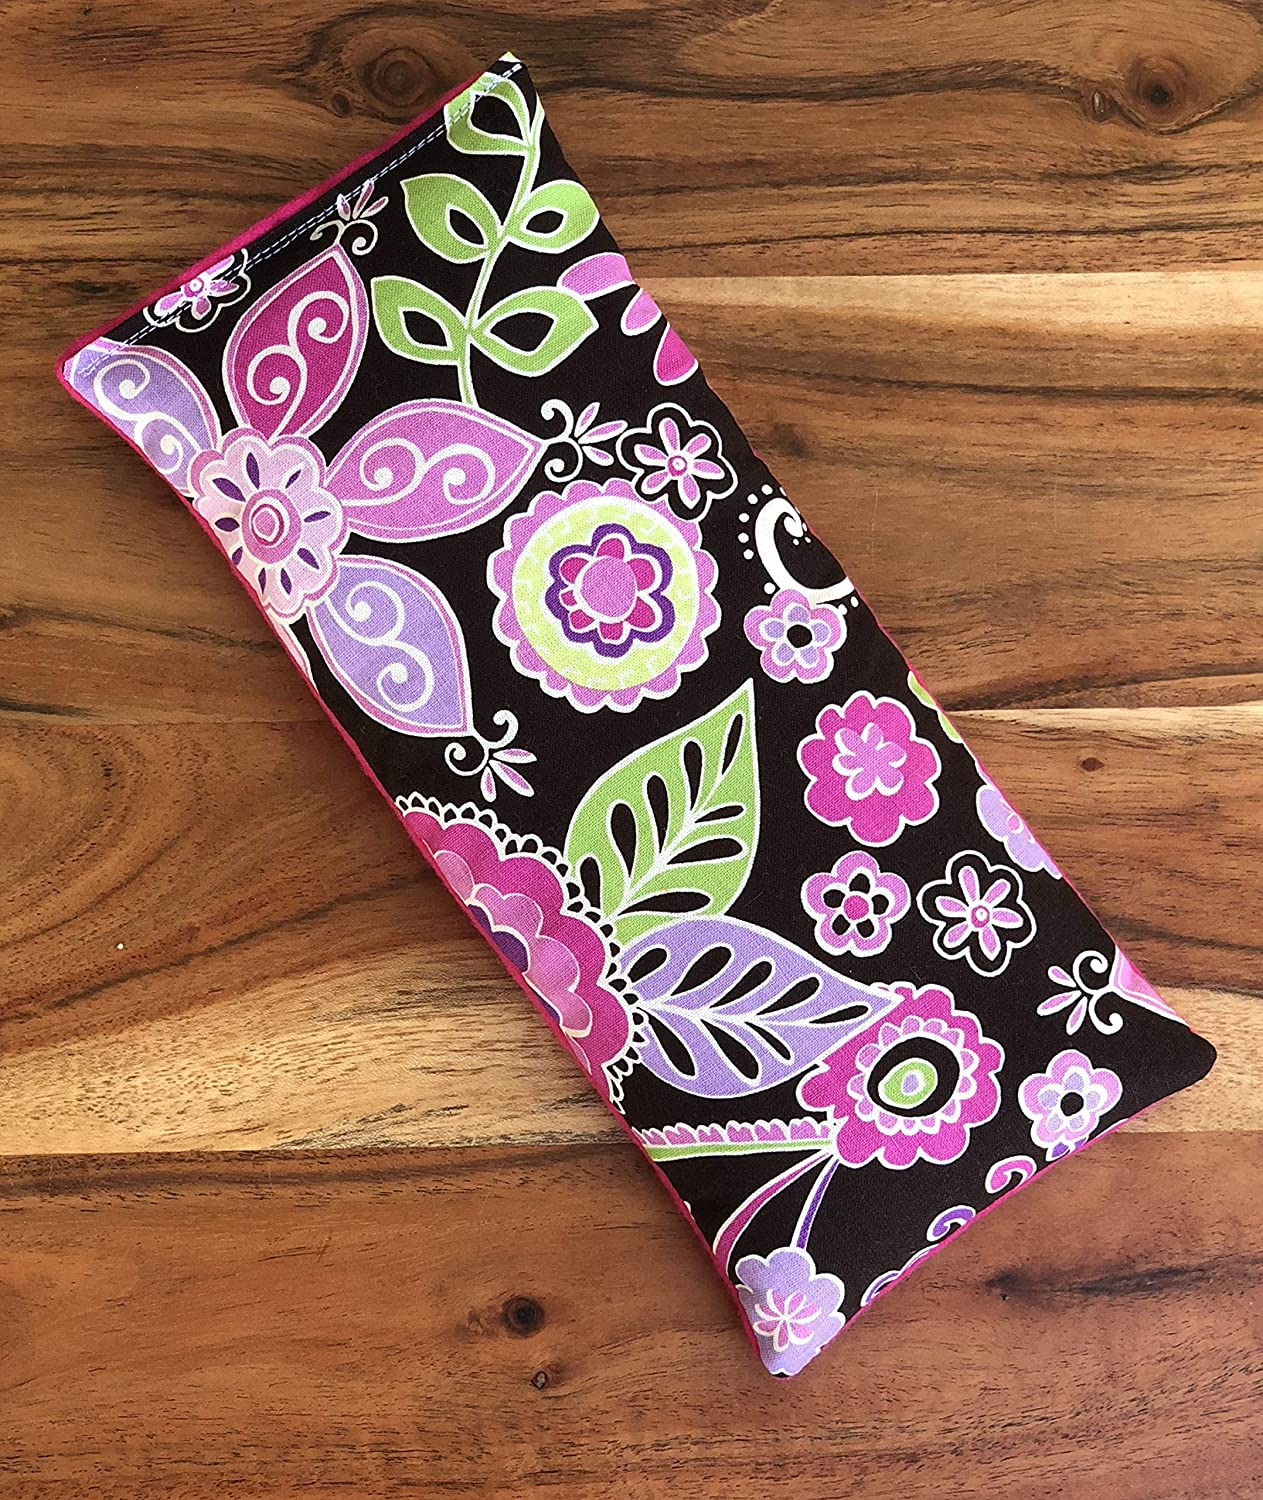 Microwave Heating Pad with Flax Seed and Dried Lavender Gift for Mom